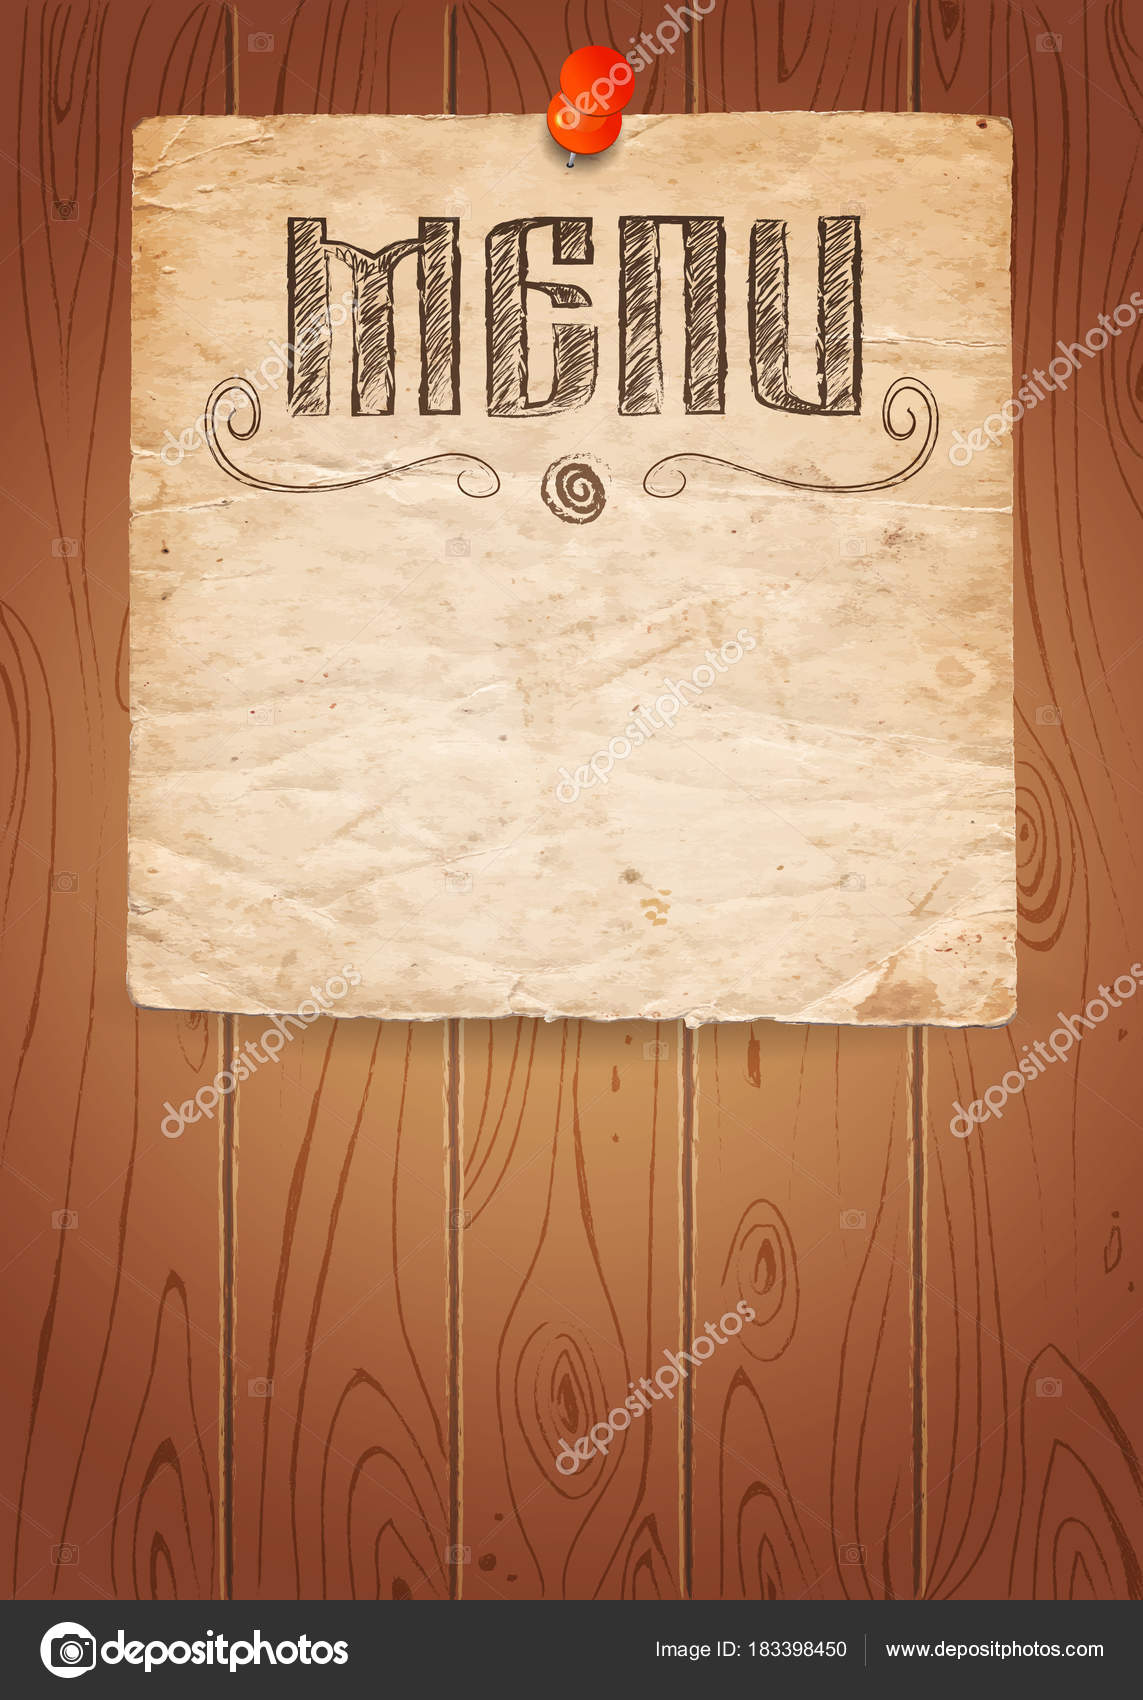 Menu of restaurant on old paper and wooden background